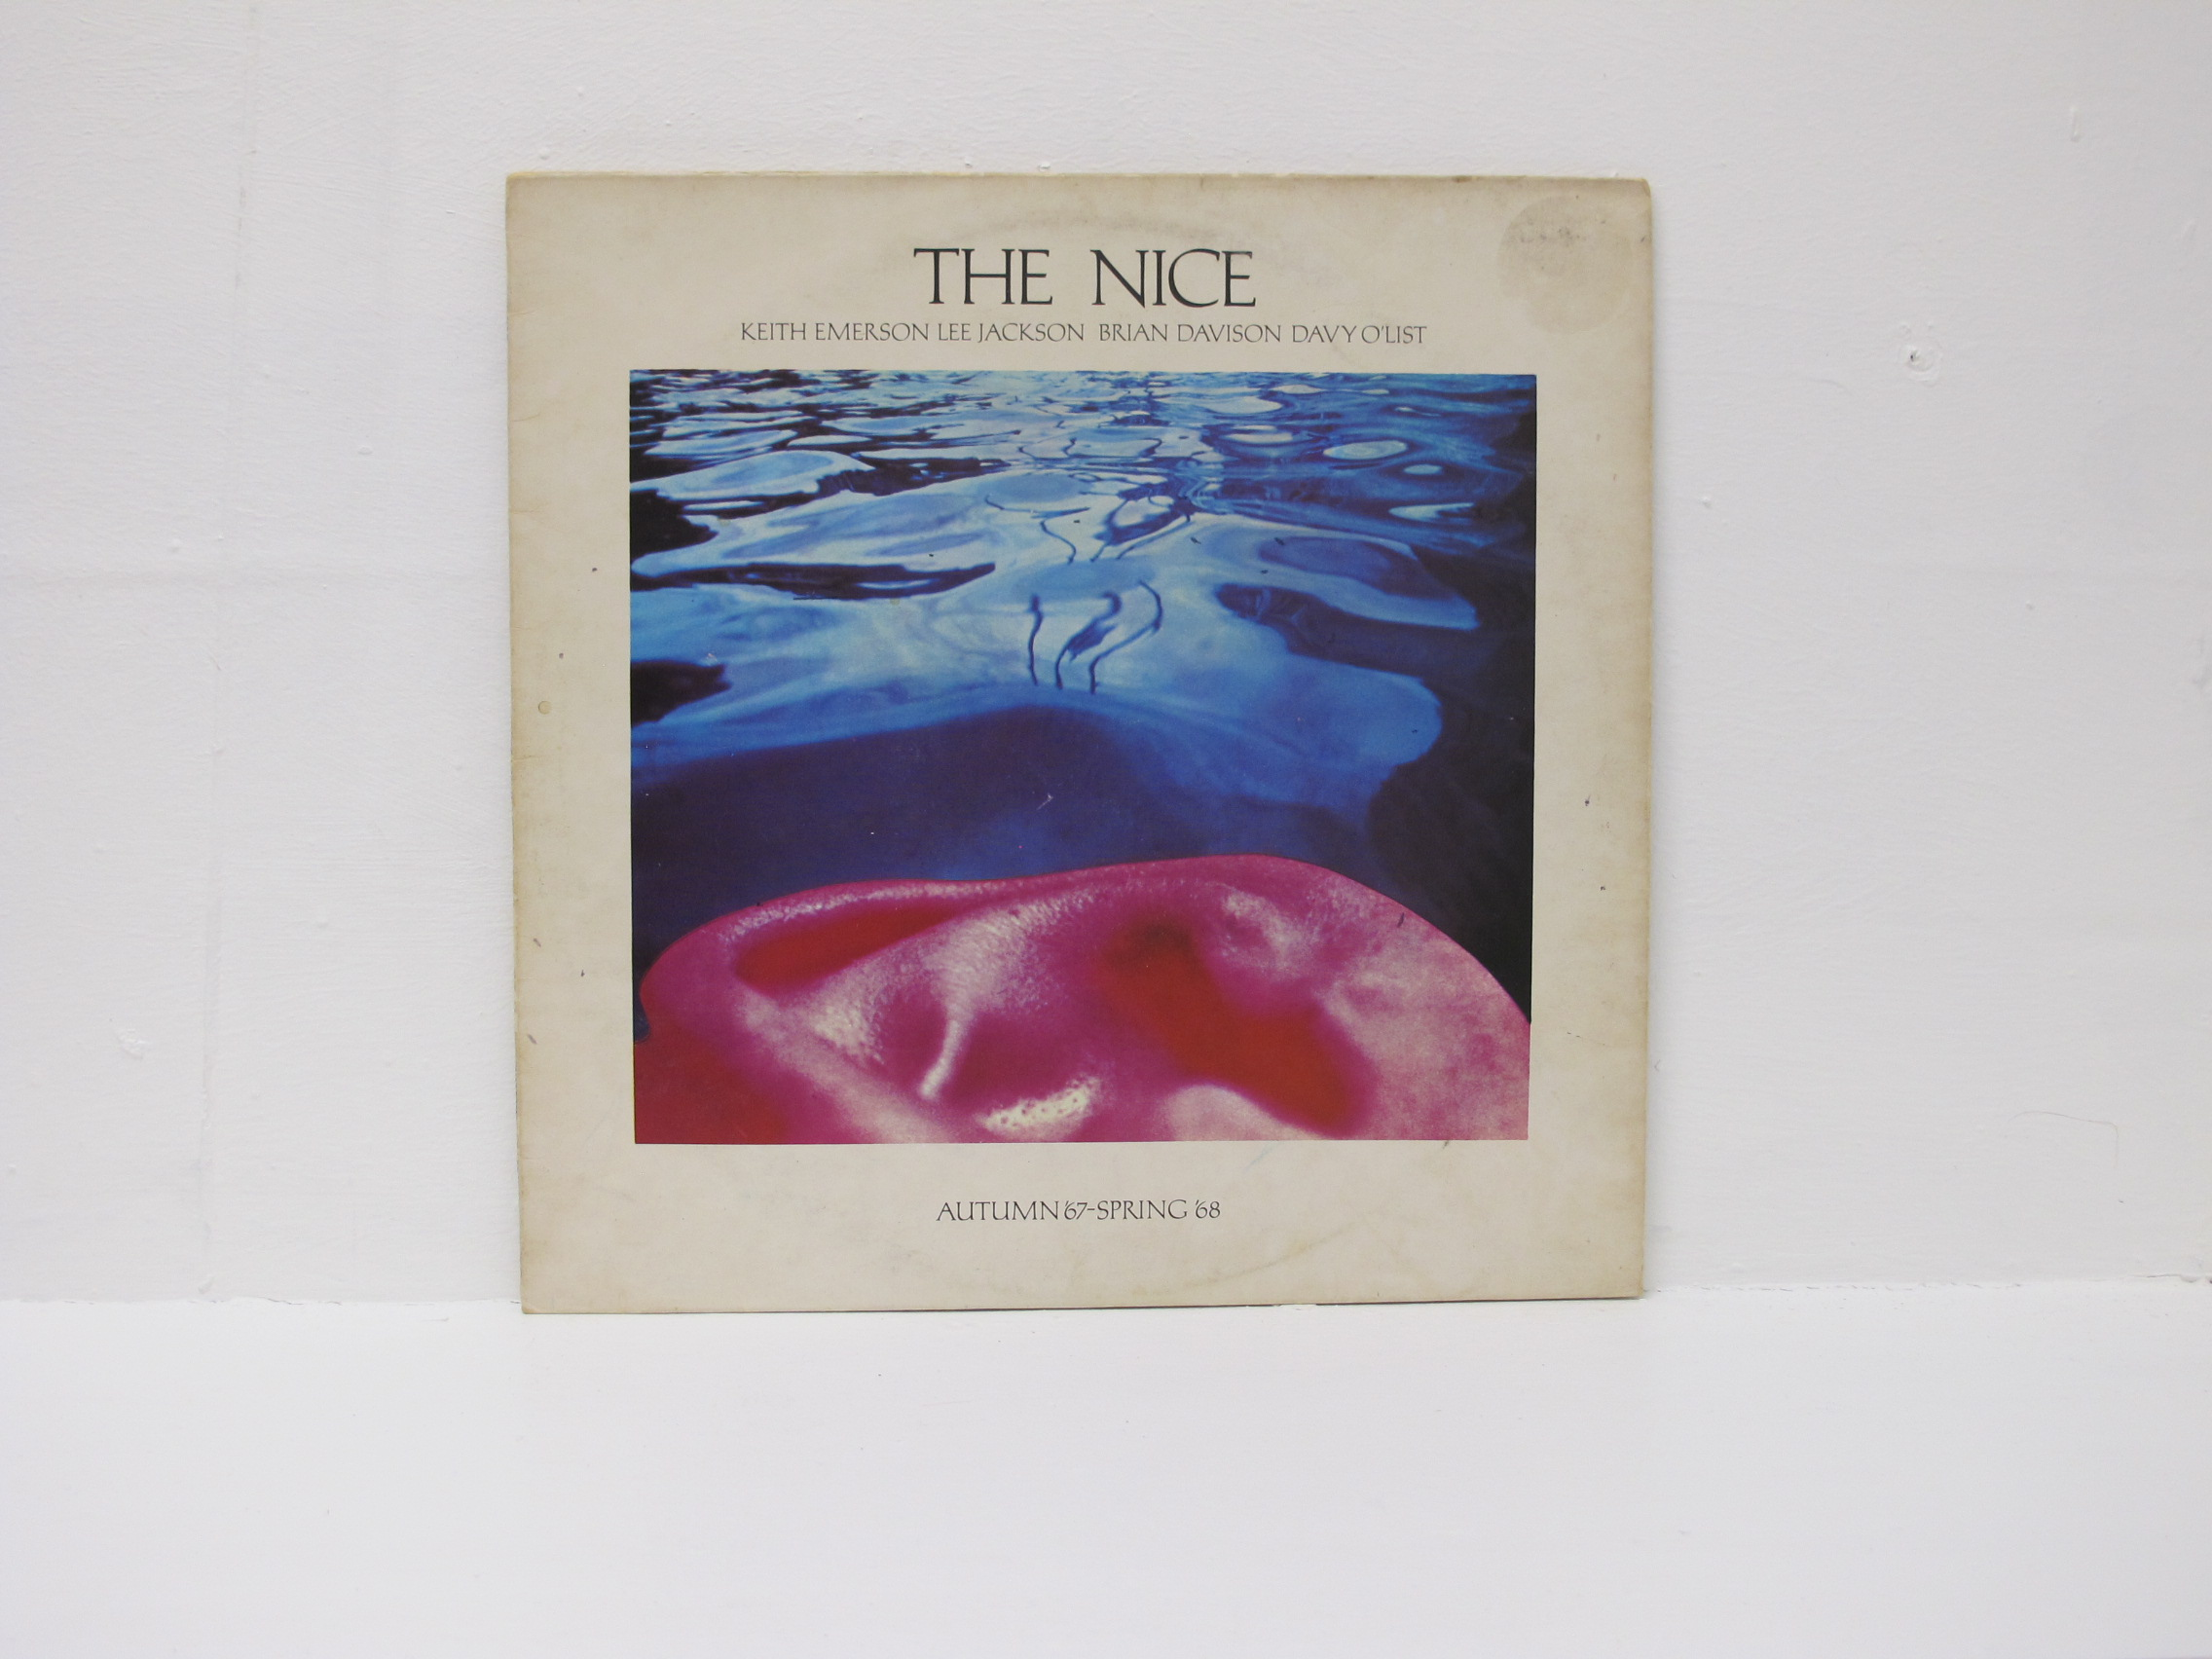 The Nice - Autumn '67 - Spring '68